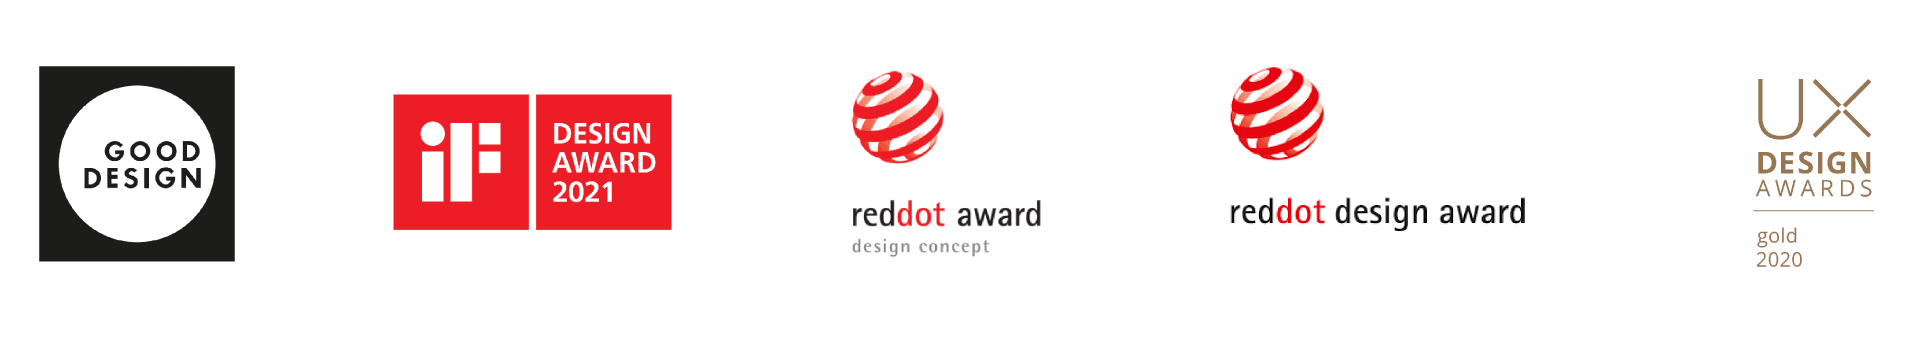 team consulting medical device design awards